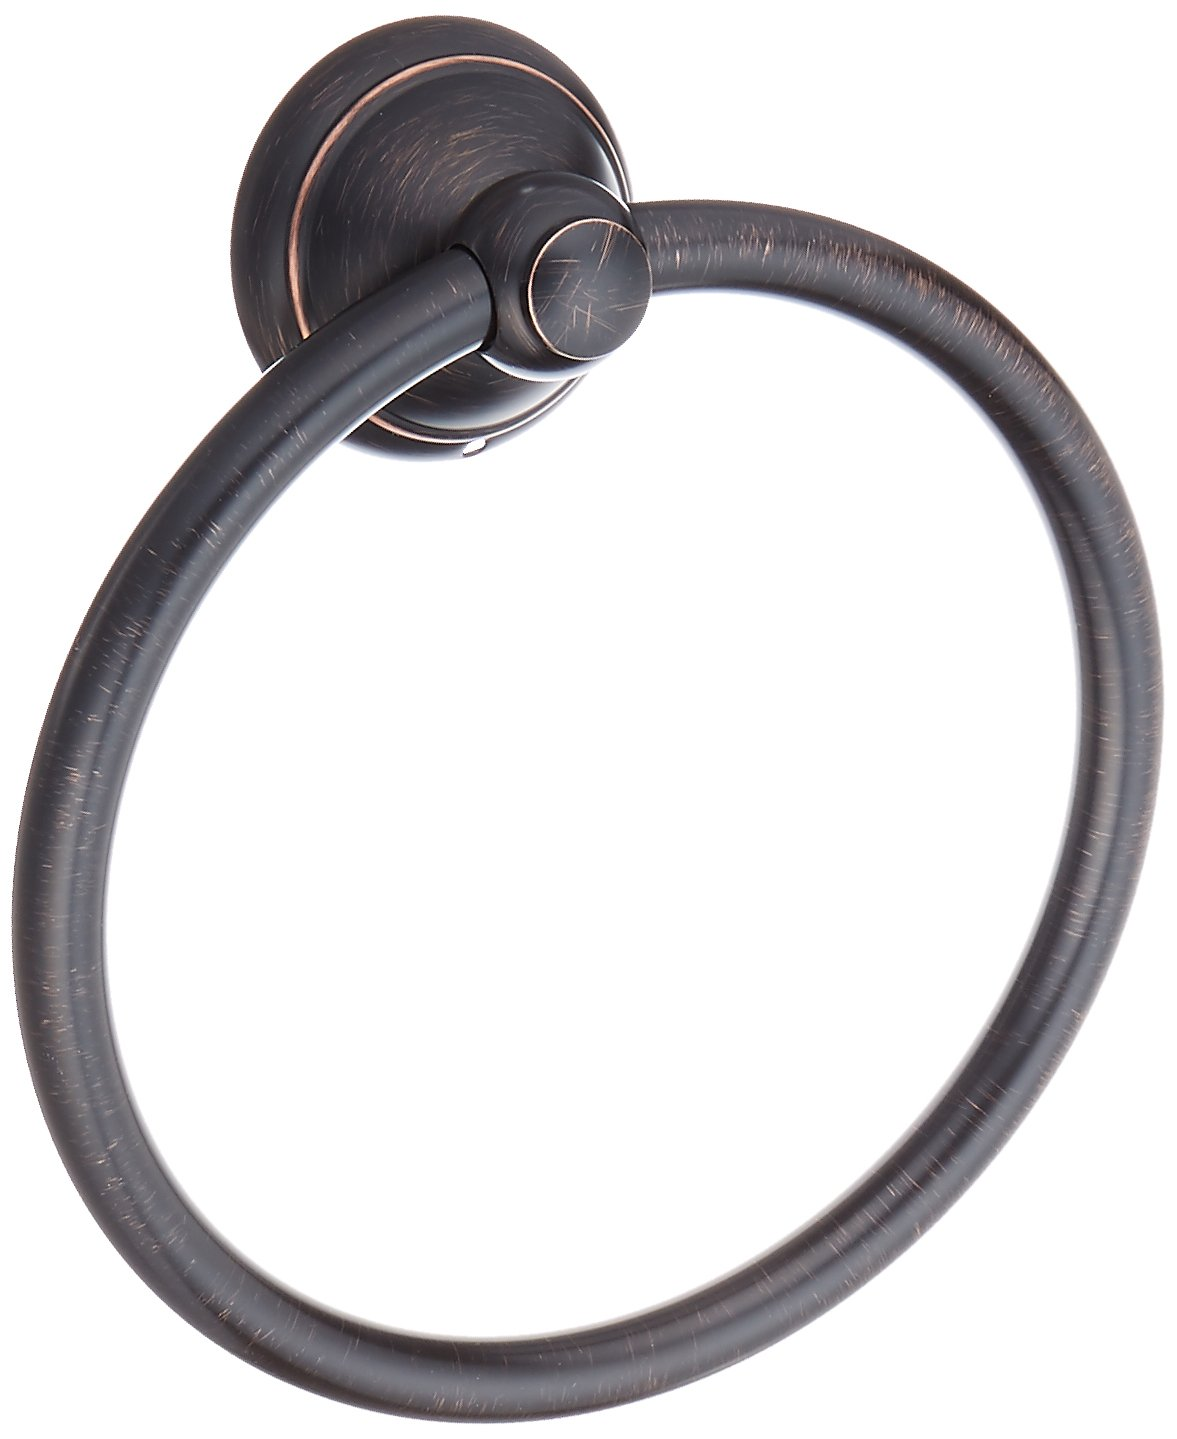 Hansgrohe 06095920 Towel Ring, Rubbed Bronze